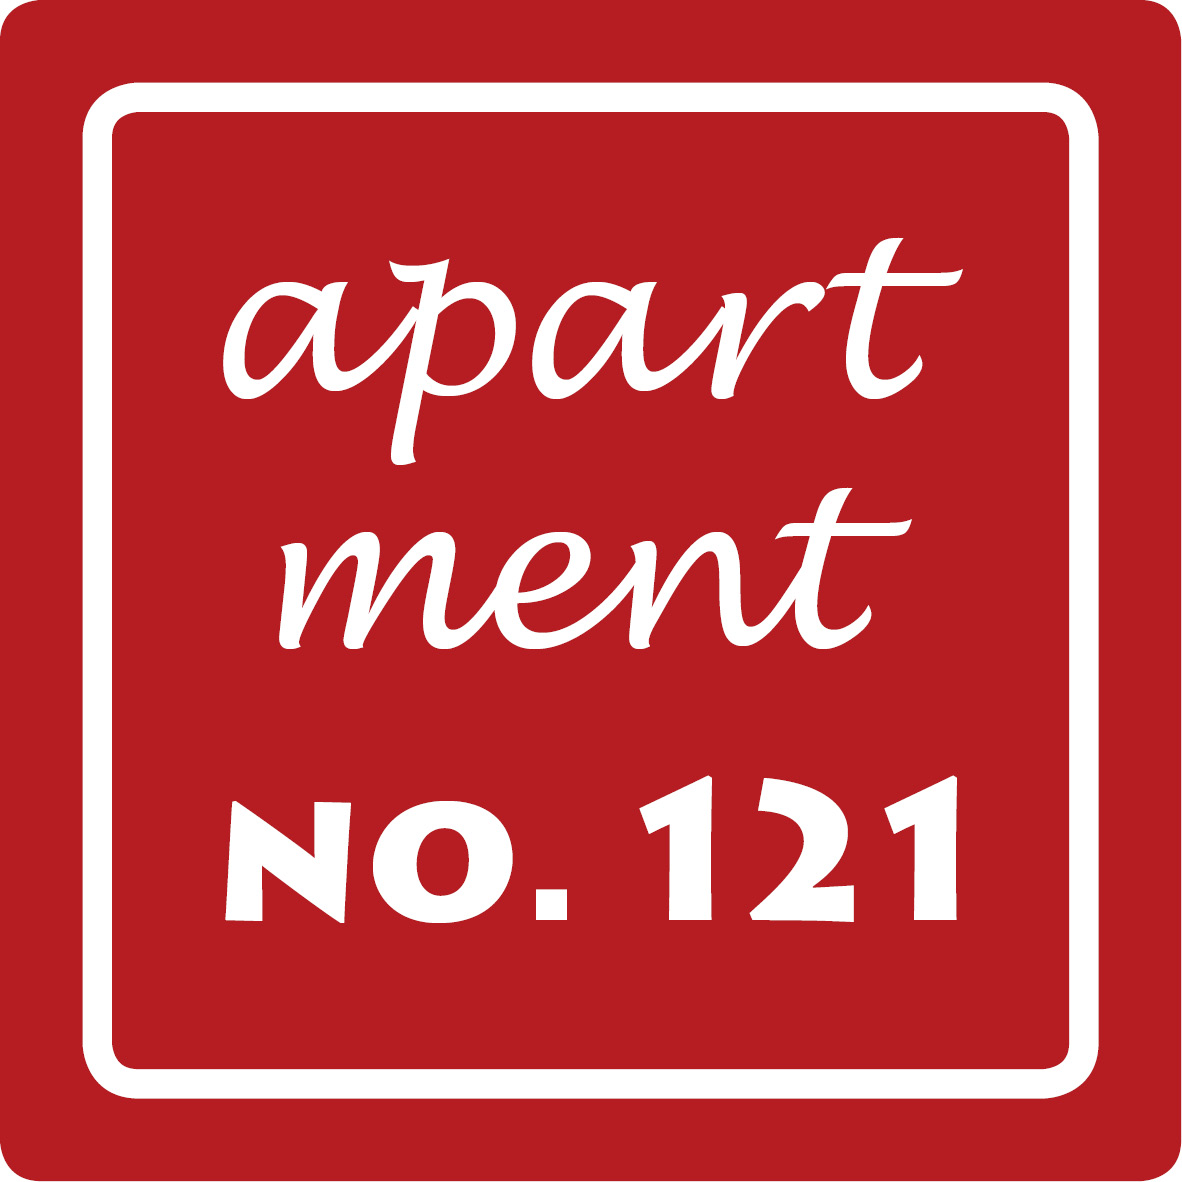 Link zum Apartment No. 121